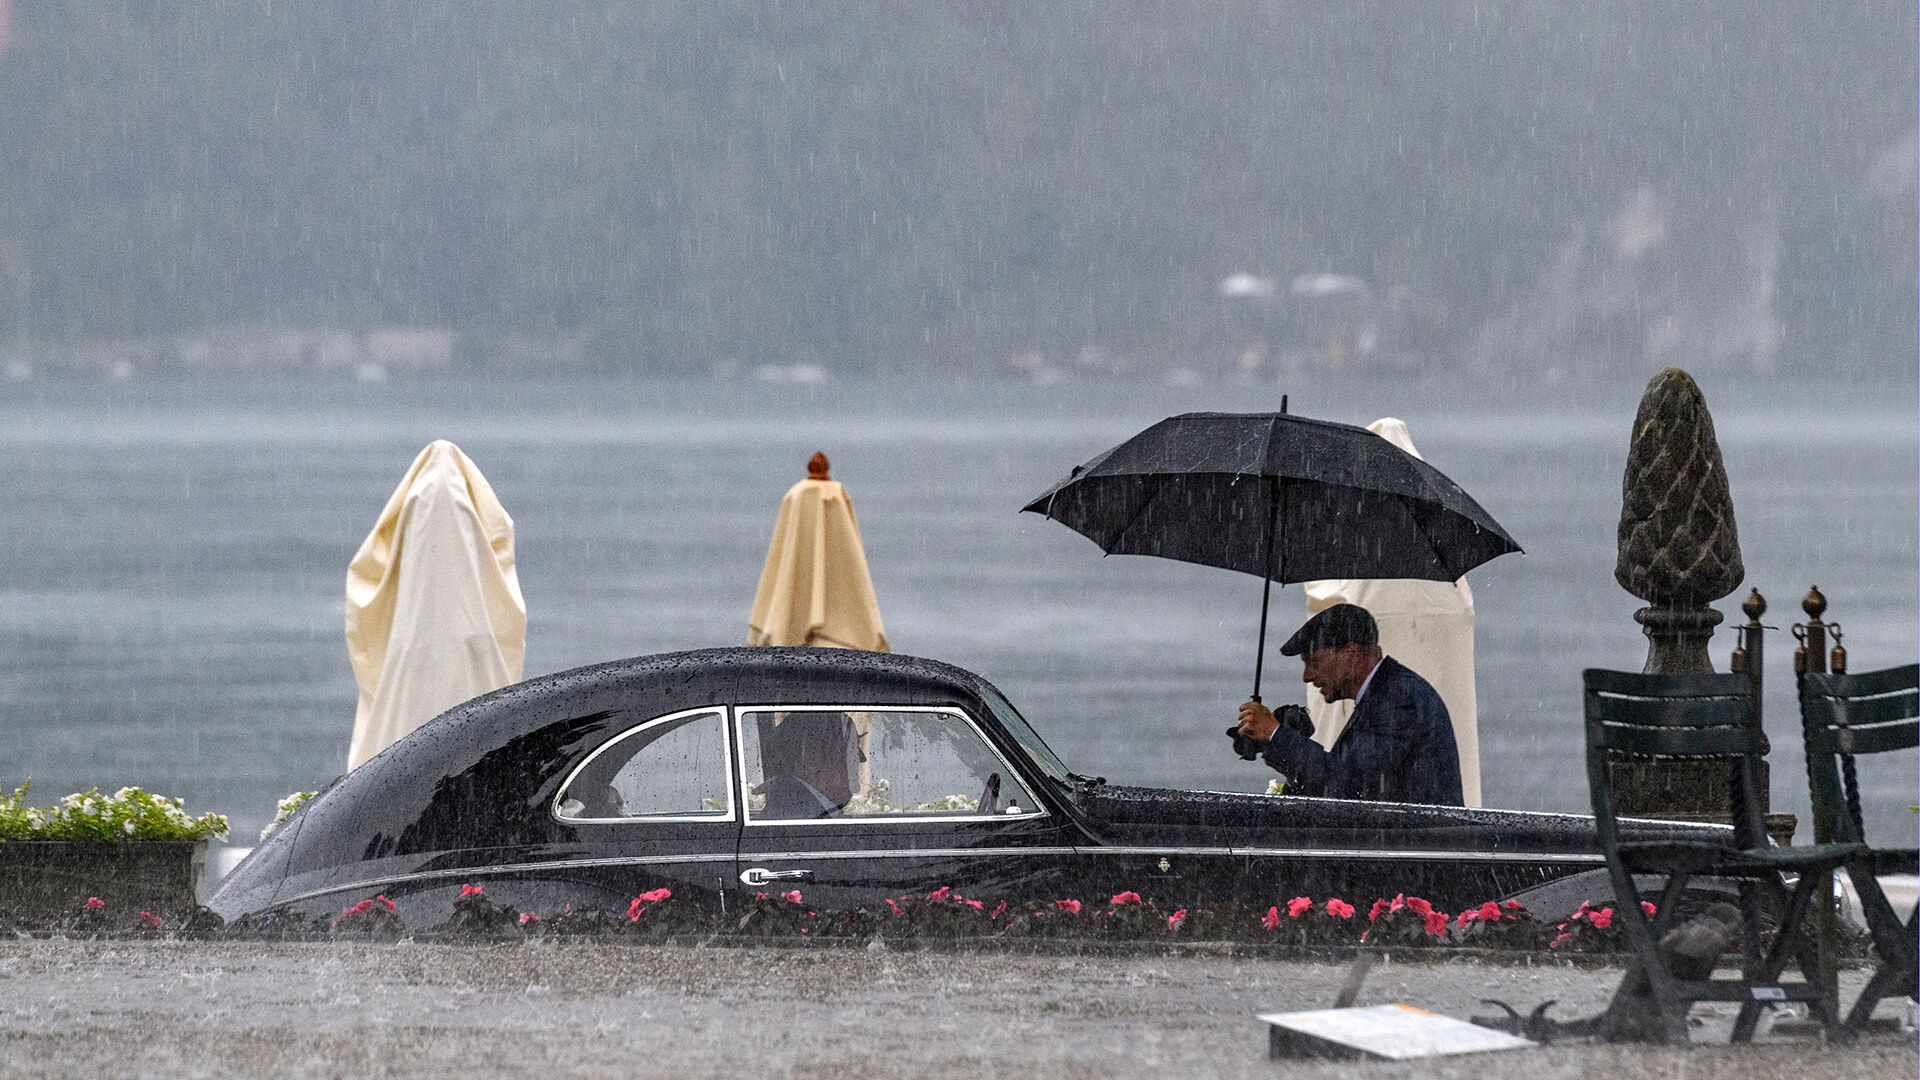 The floodgates of heaven: Villa d'Este Concorso 2019